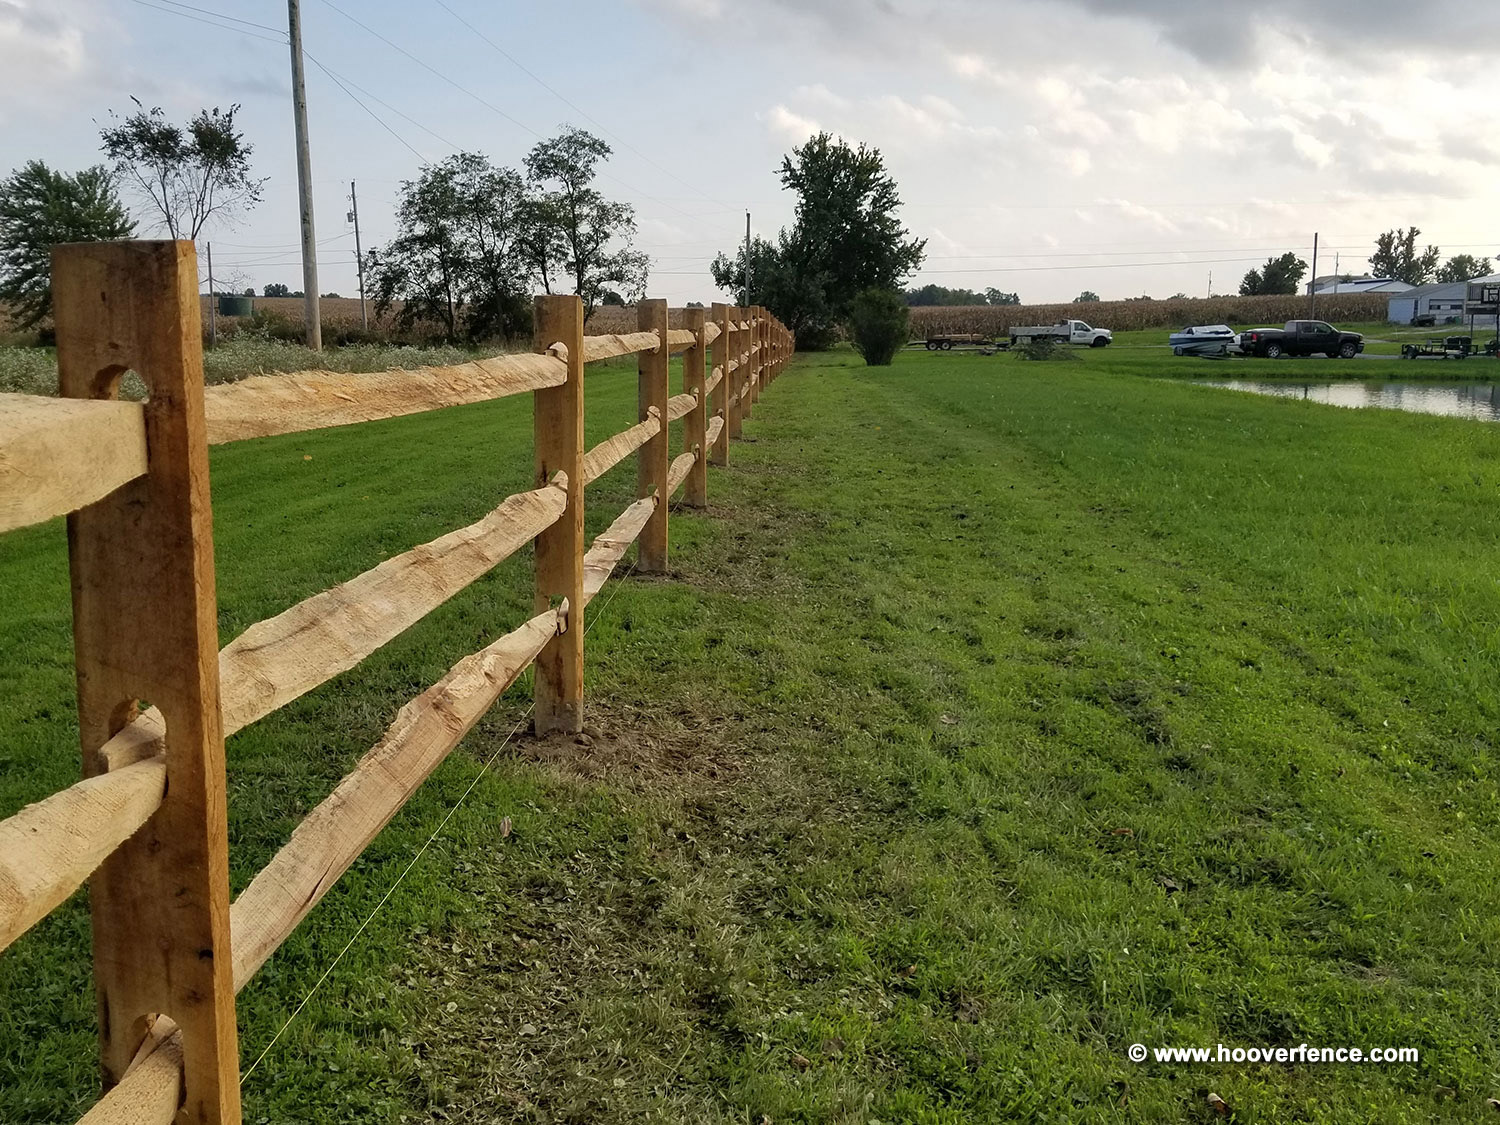 West Virginia Lap Rail Fence Installation by Hoover Fence - Beloit, OH 10-2018